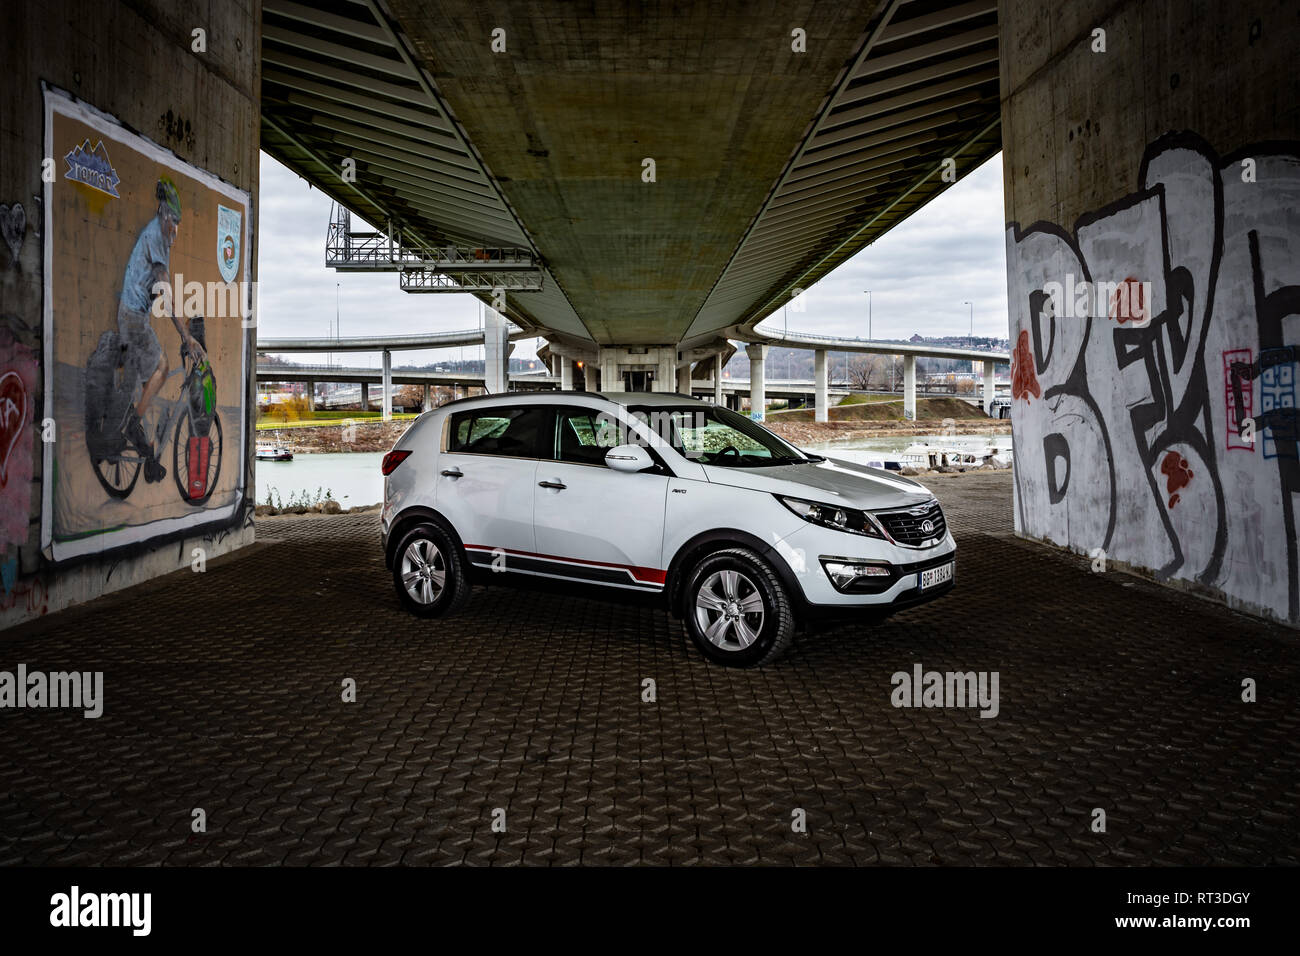 SUV Kia Sportage 2.0 CRDI awd or 4x4, white color, parked under the bridge, on the banks of the river Sava. Stock Photo